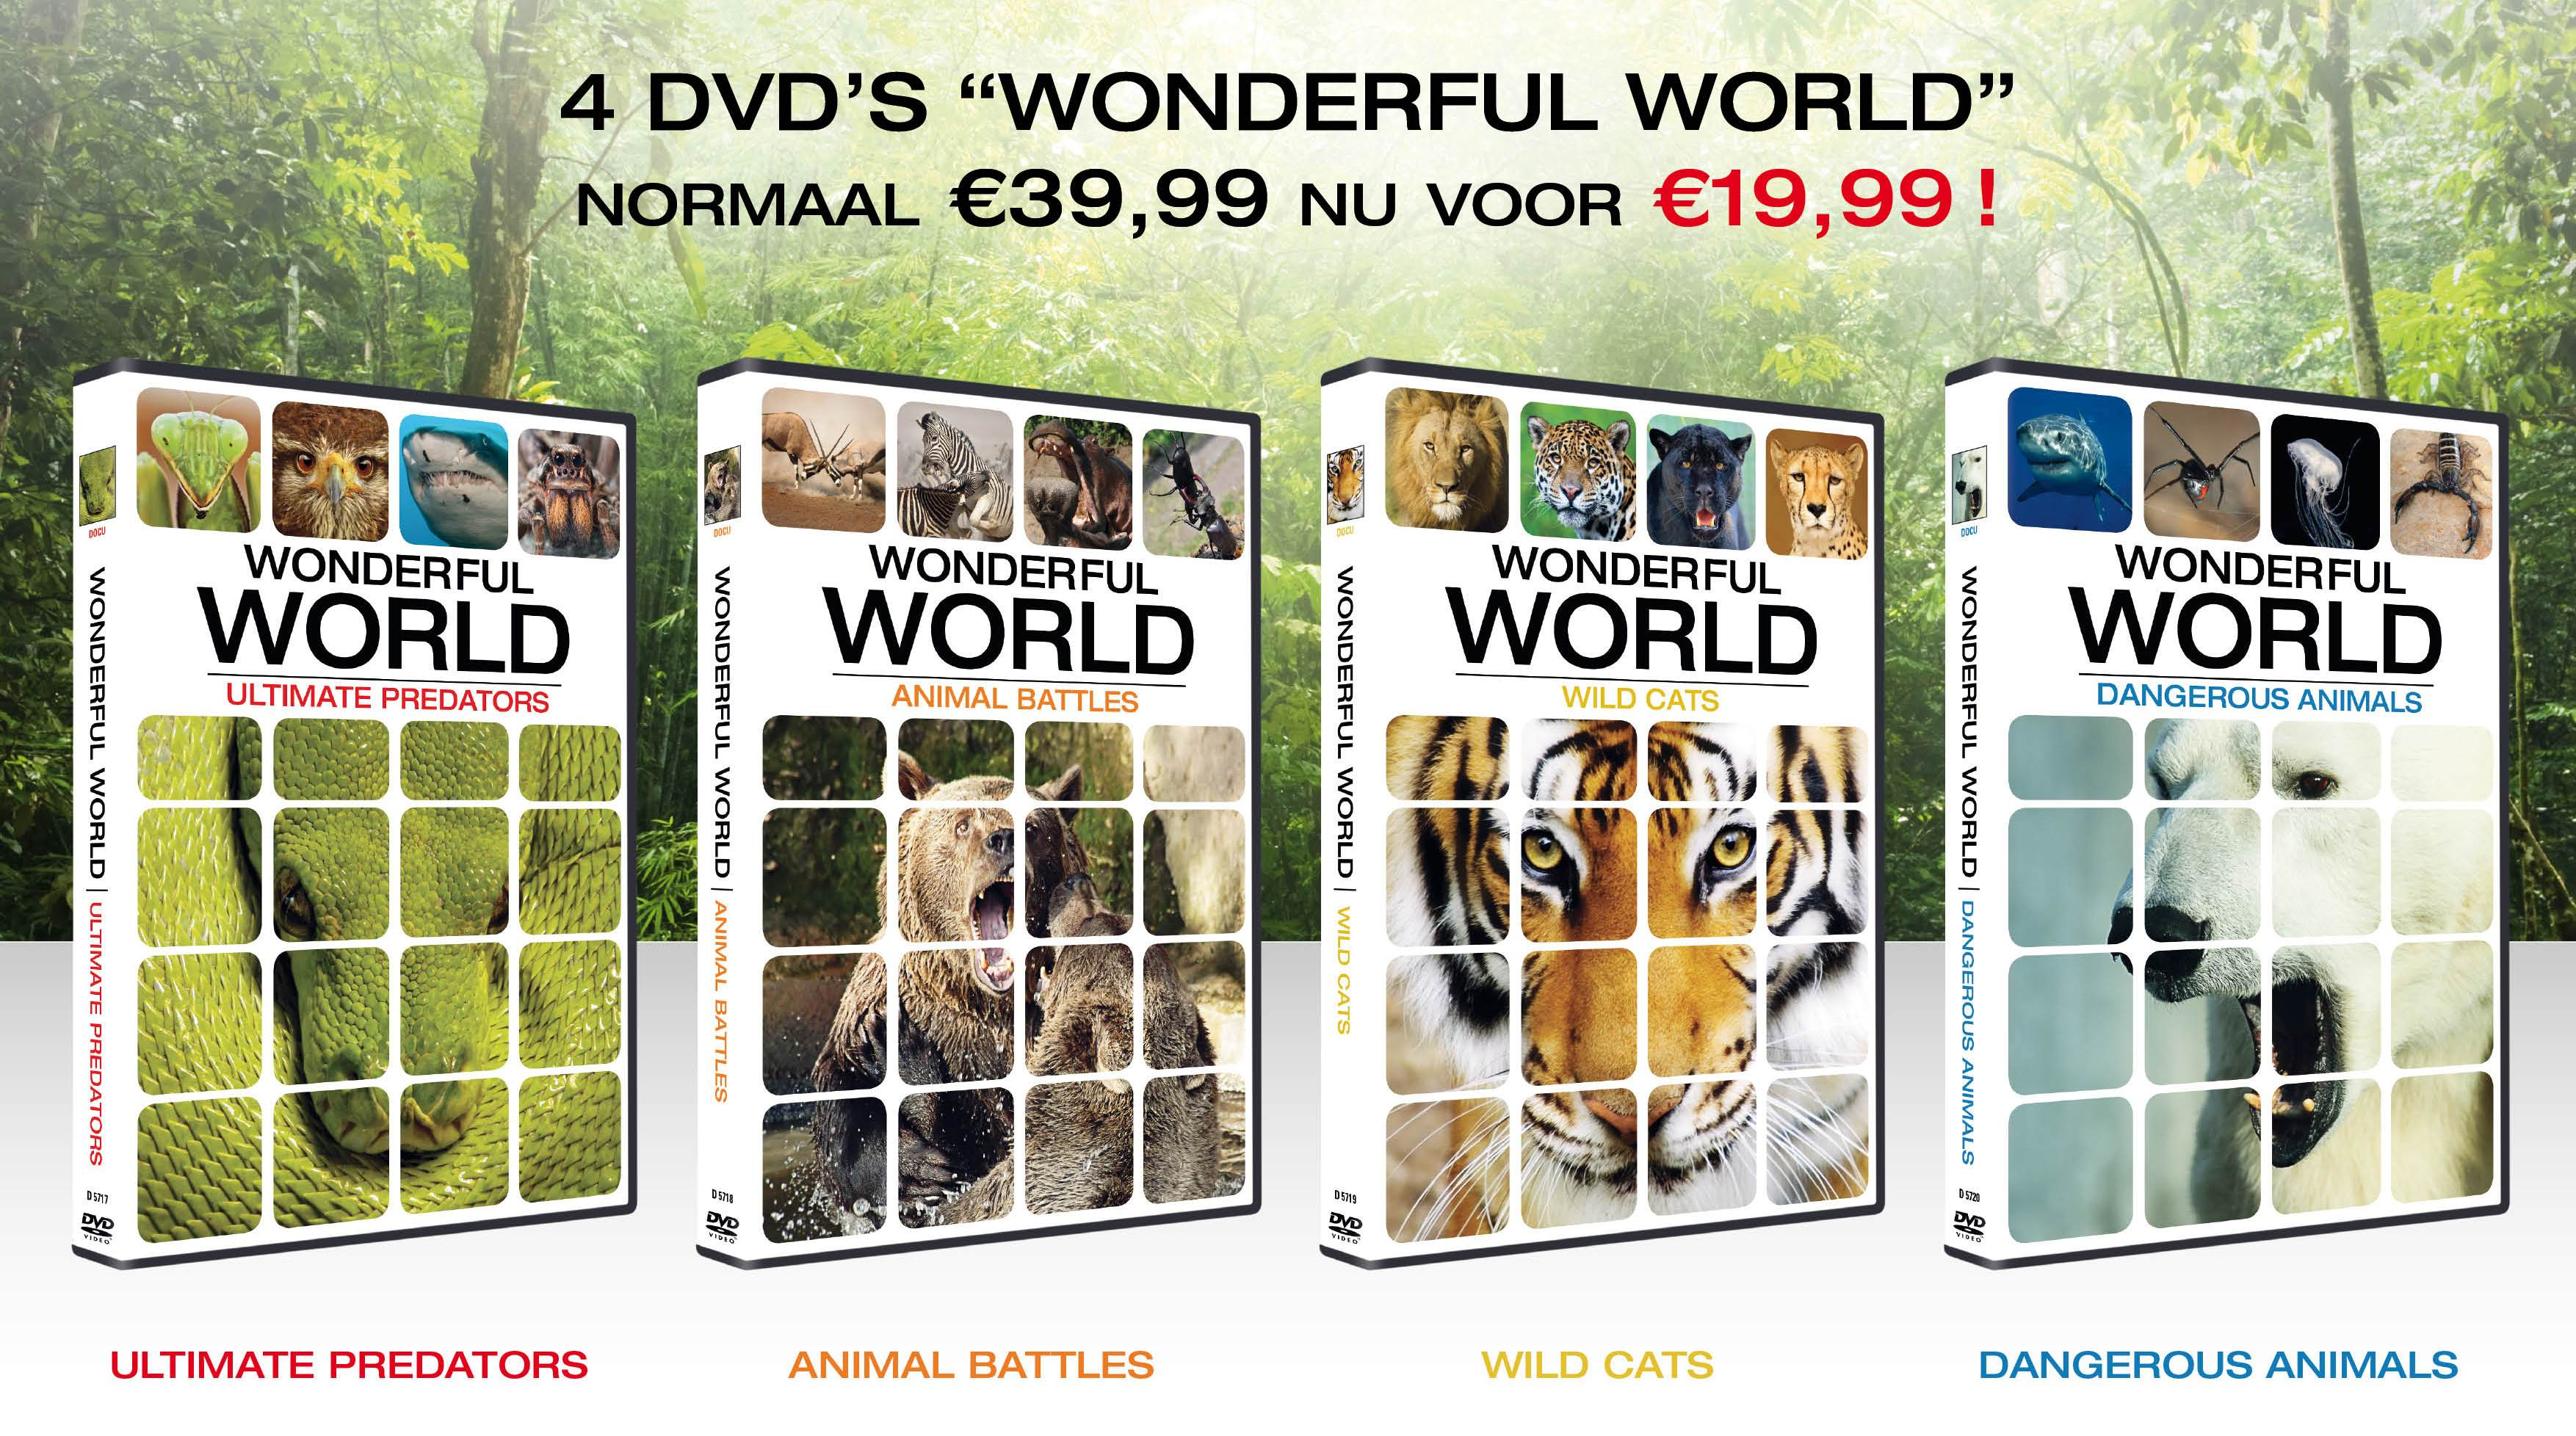 Roots geeft 5x de dvd-set Wonderful World weg!